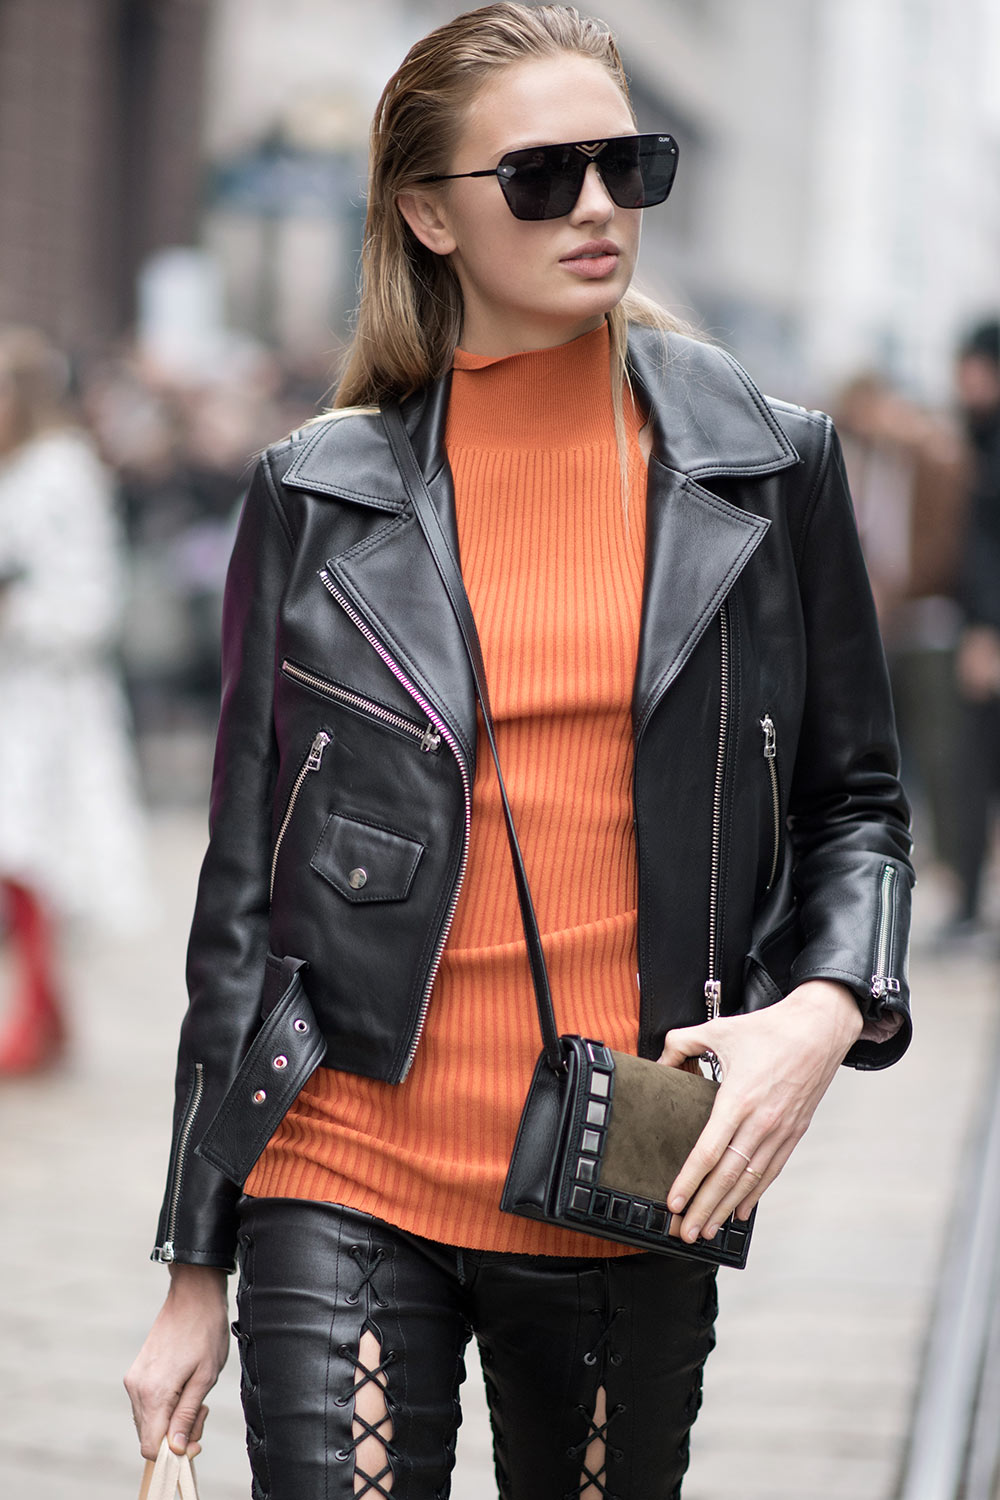 Romee Strijd Is Seen During Milan Fashion Week Leather